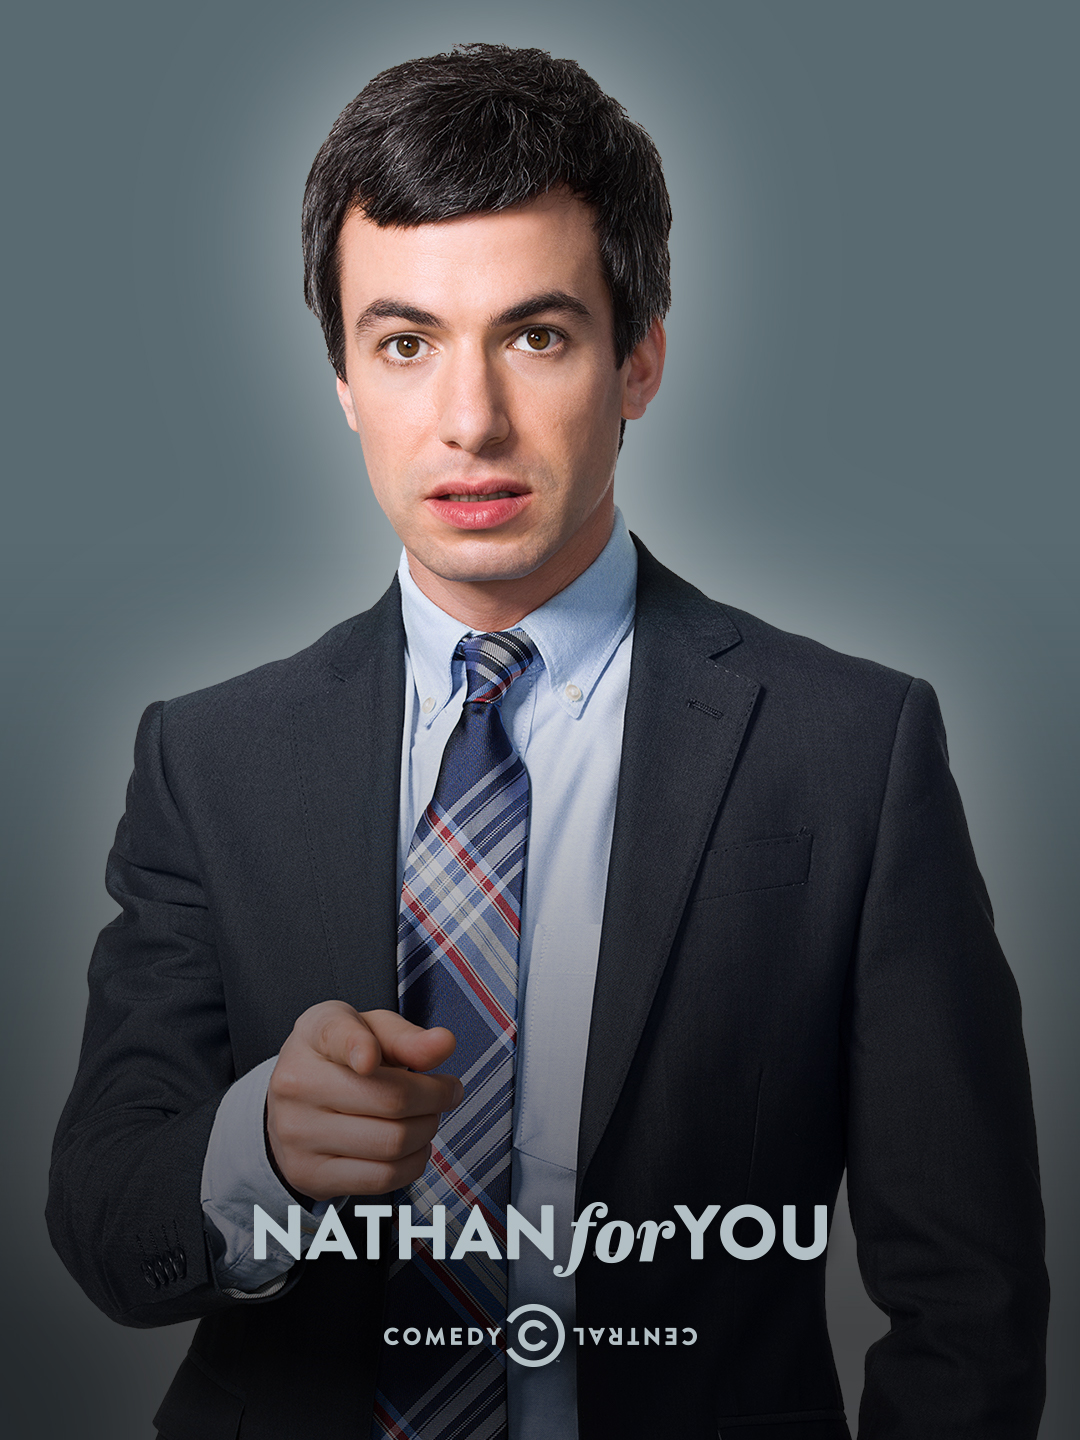 Nathan for You (TV Series 2013–2017) - IMDb